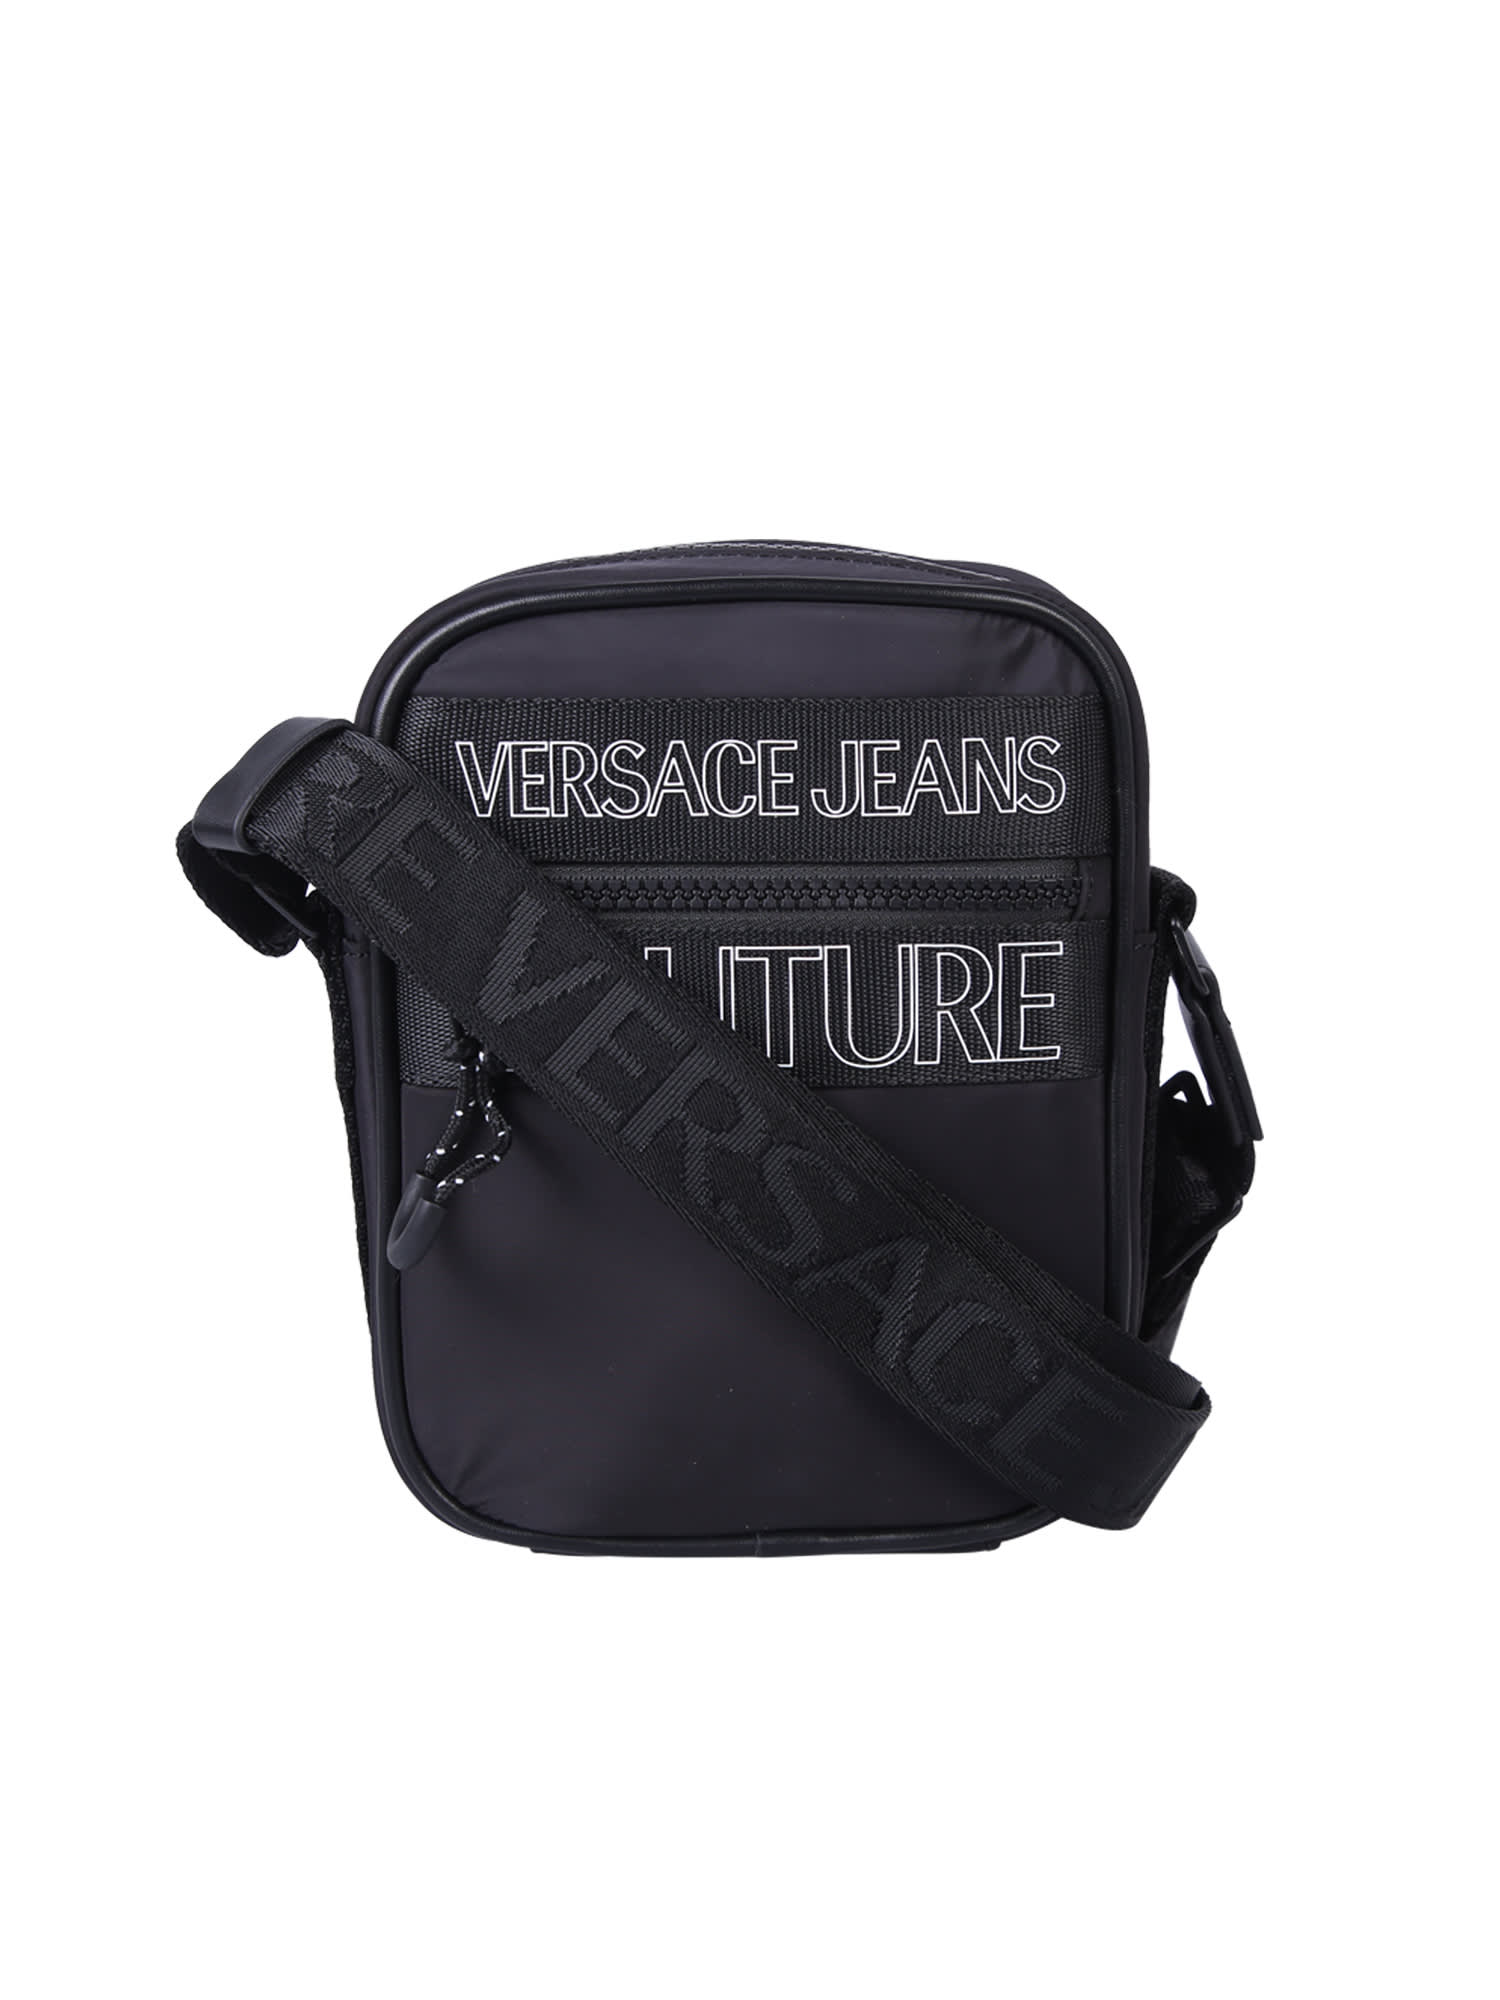 Versace Jeans Couture Bags BRANDED BAG